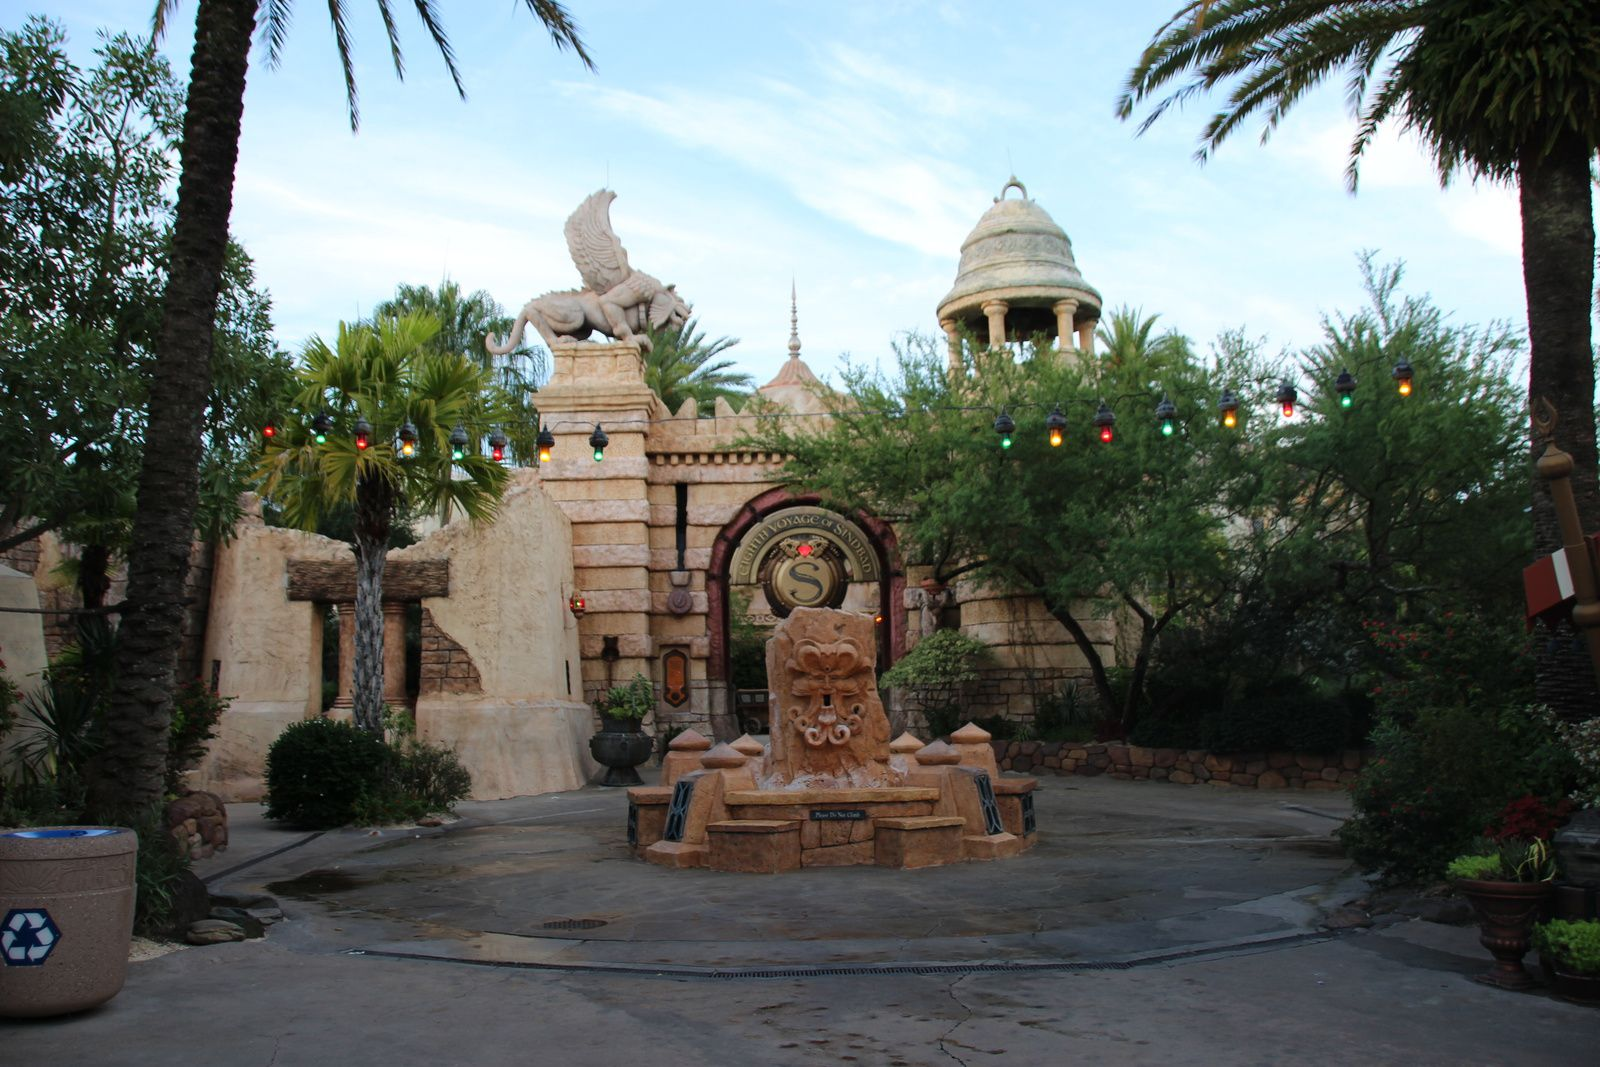 The lost continent : Universal's Islands of Adventure